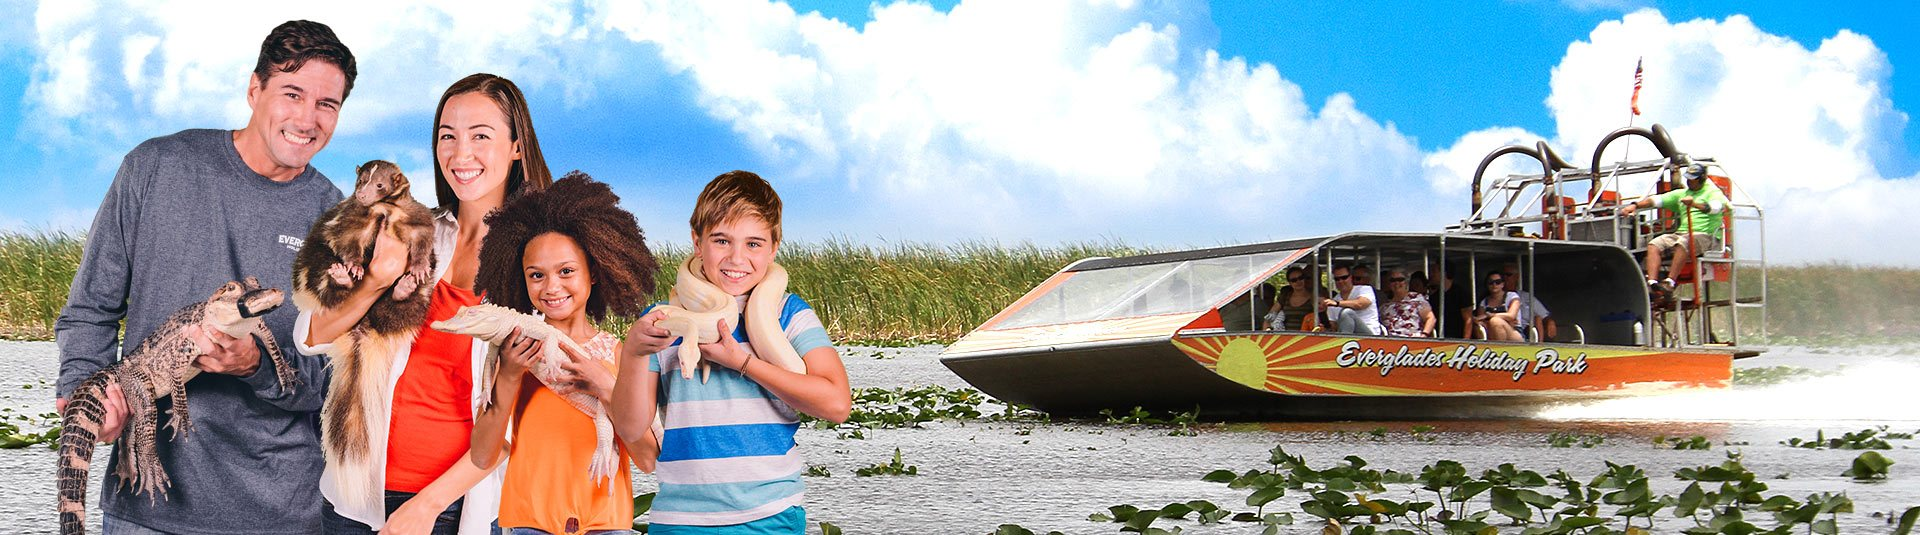 The Best Everglades Airboat Tours and Rides